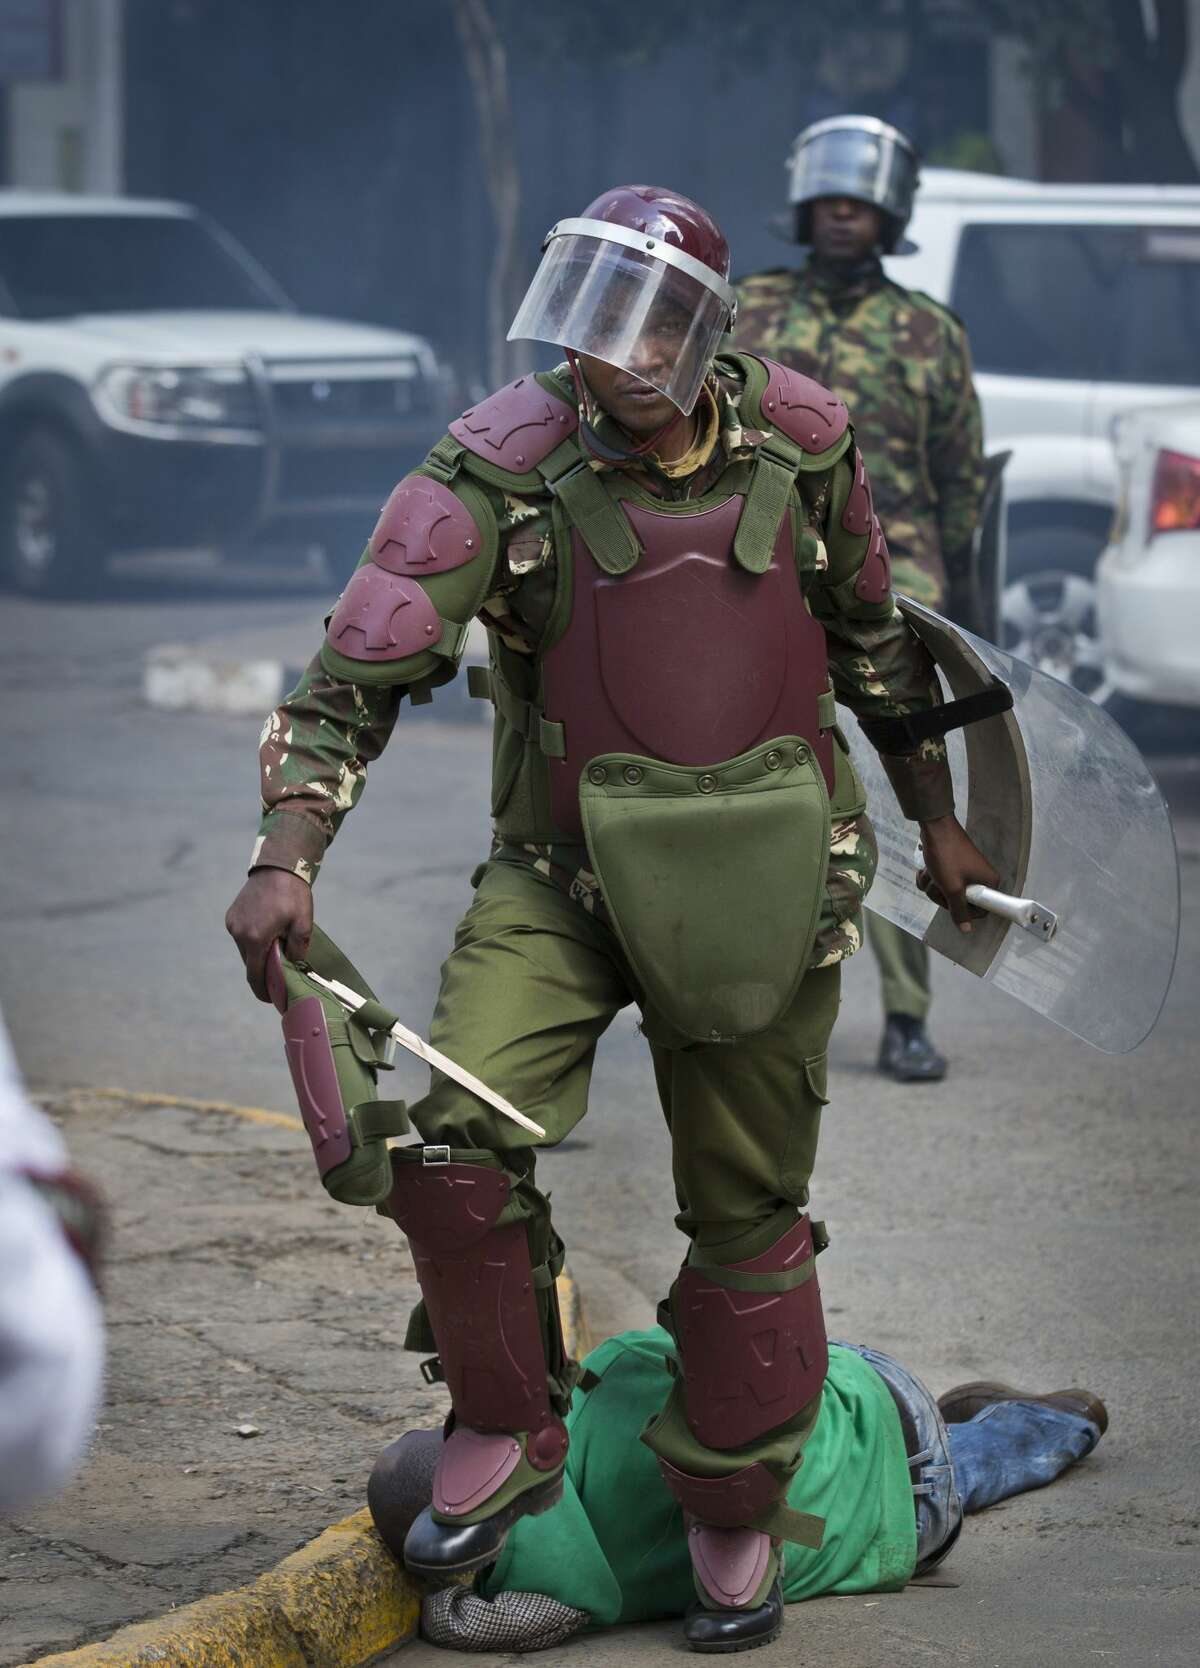 A Kenyan riot policeman walks away after repeatedly kicking a protester, as he lies in the street after tripping over while trying to flee from them, during a protest in downtown Nairobi, Kenya Monday, May 16, 2016. Kenyan police have tear-gassed and beaten opposition supporters during a protest demanding the disbandment of the electoral authority over alleged bias and corruption. (AP Photo/Ben Curtis) AP story: Kenya: Photos of police violence spark international outrage